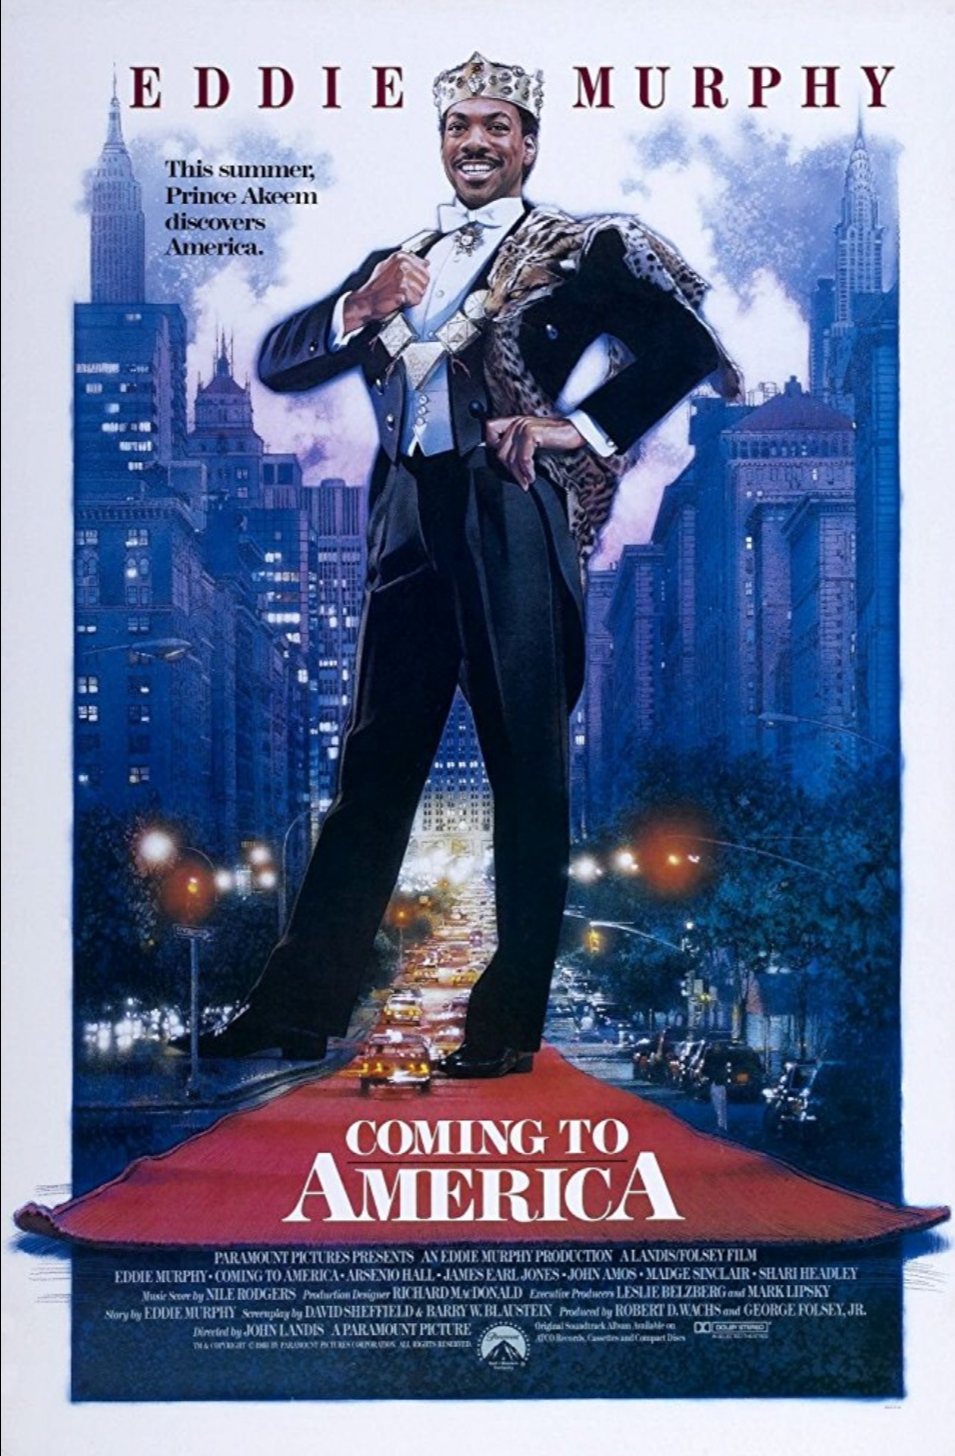 top classic romantic movies. old romantic movies. Top romance movies to watch. Best romantic movies of all time. coming to america movie poster